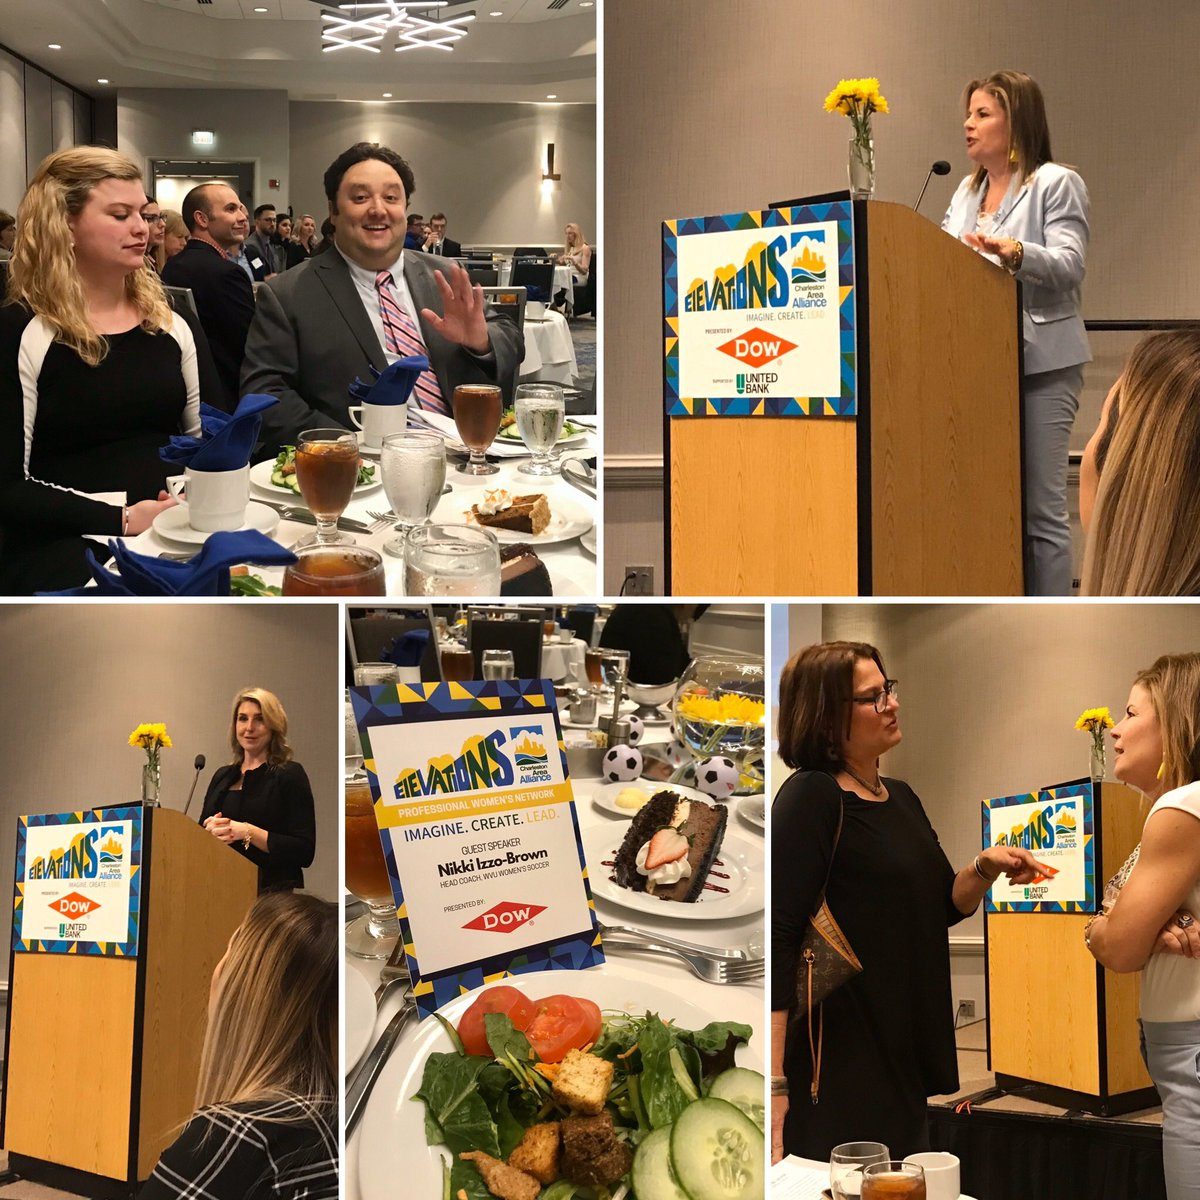 #ElevationsLuncheon #CharlestonAreaAlliance #WVUSports #CoachIzzoBrown #WVUWomensSoccer #LoveTough #Respect #Kindness #Endurance #theGET #304 Thanks for an inspiring message! #professionalwomensnetwork